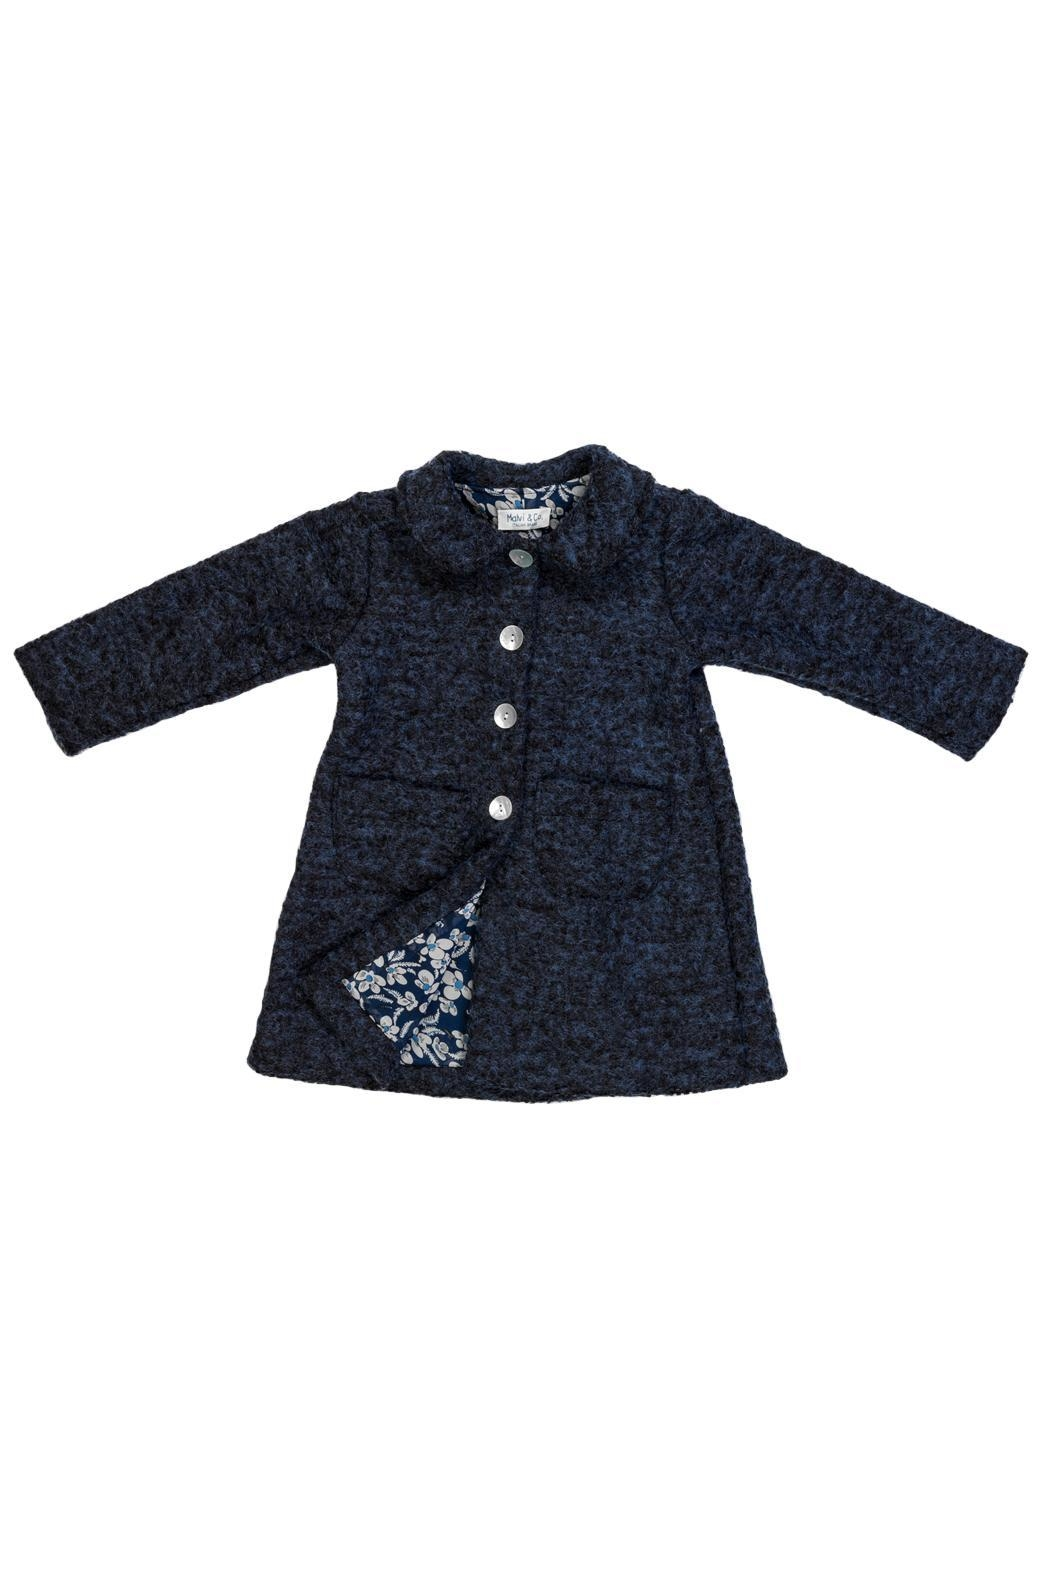 Malvi & Co. Navy Coat. - Front Cropped Image